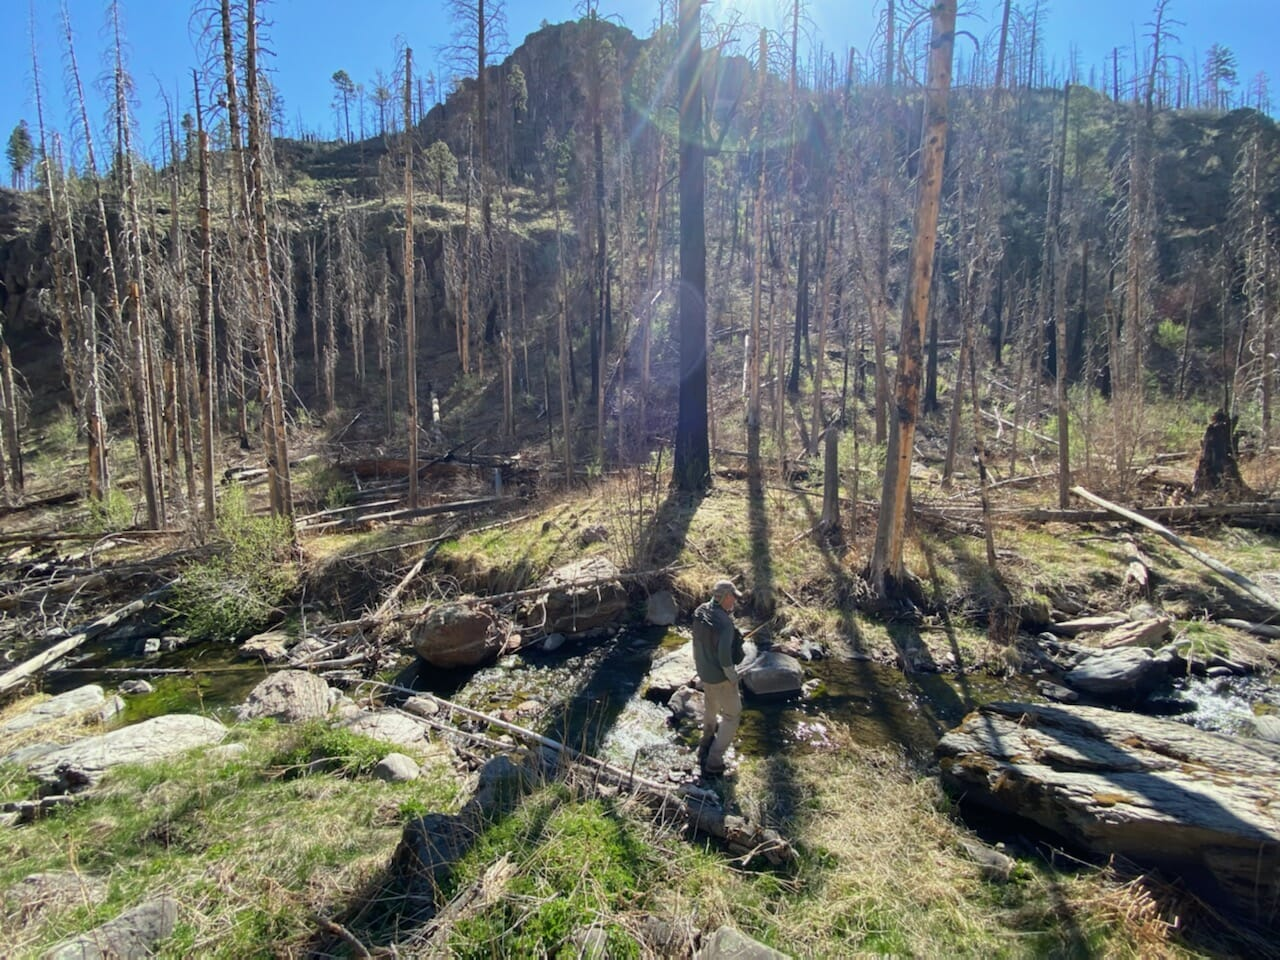 A conservationist takes in the burned landscape of Willow Creek in southern New Mexico.